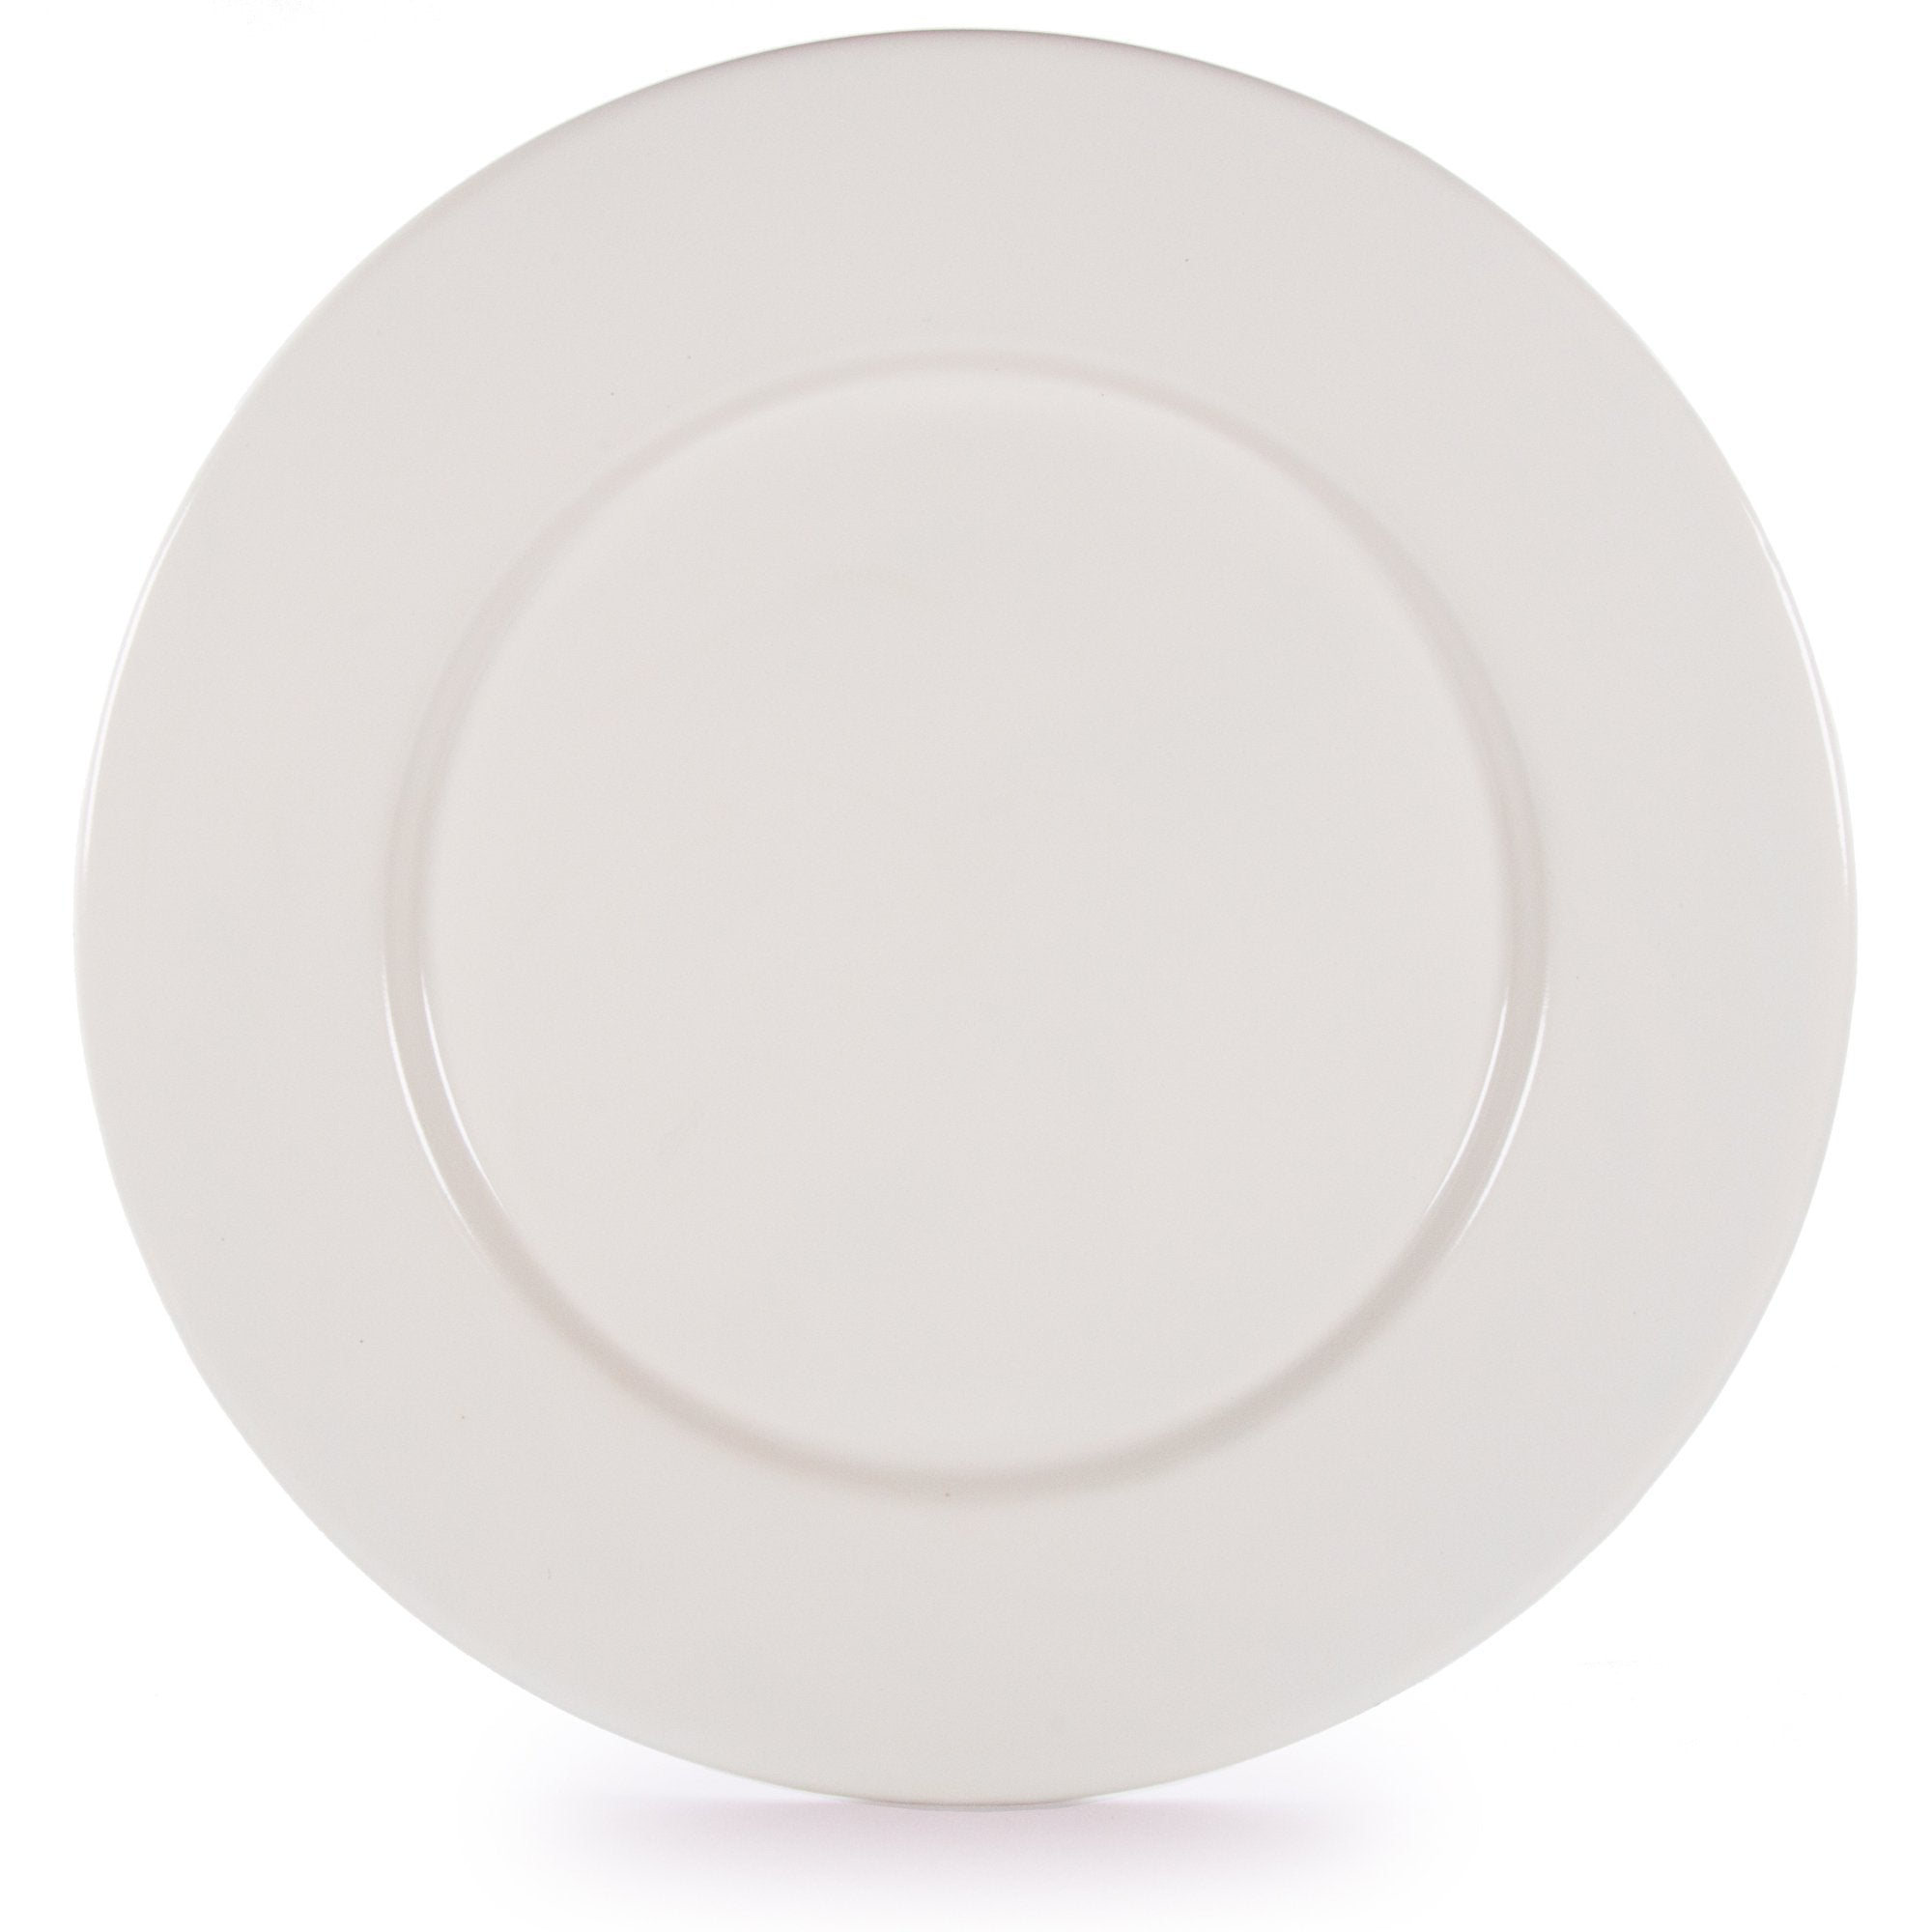 RCC91 - Glampware Plates - Cream  - Set of 4